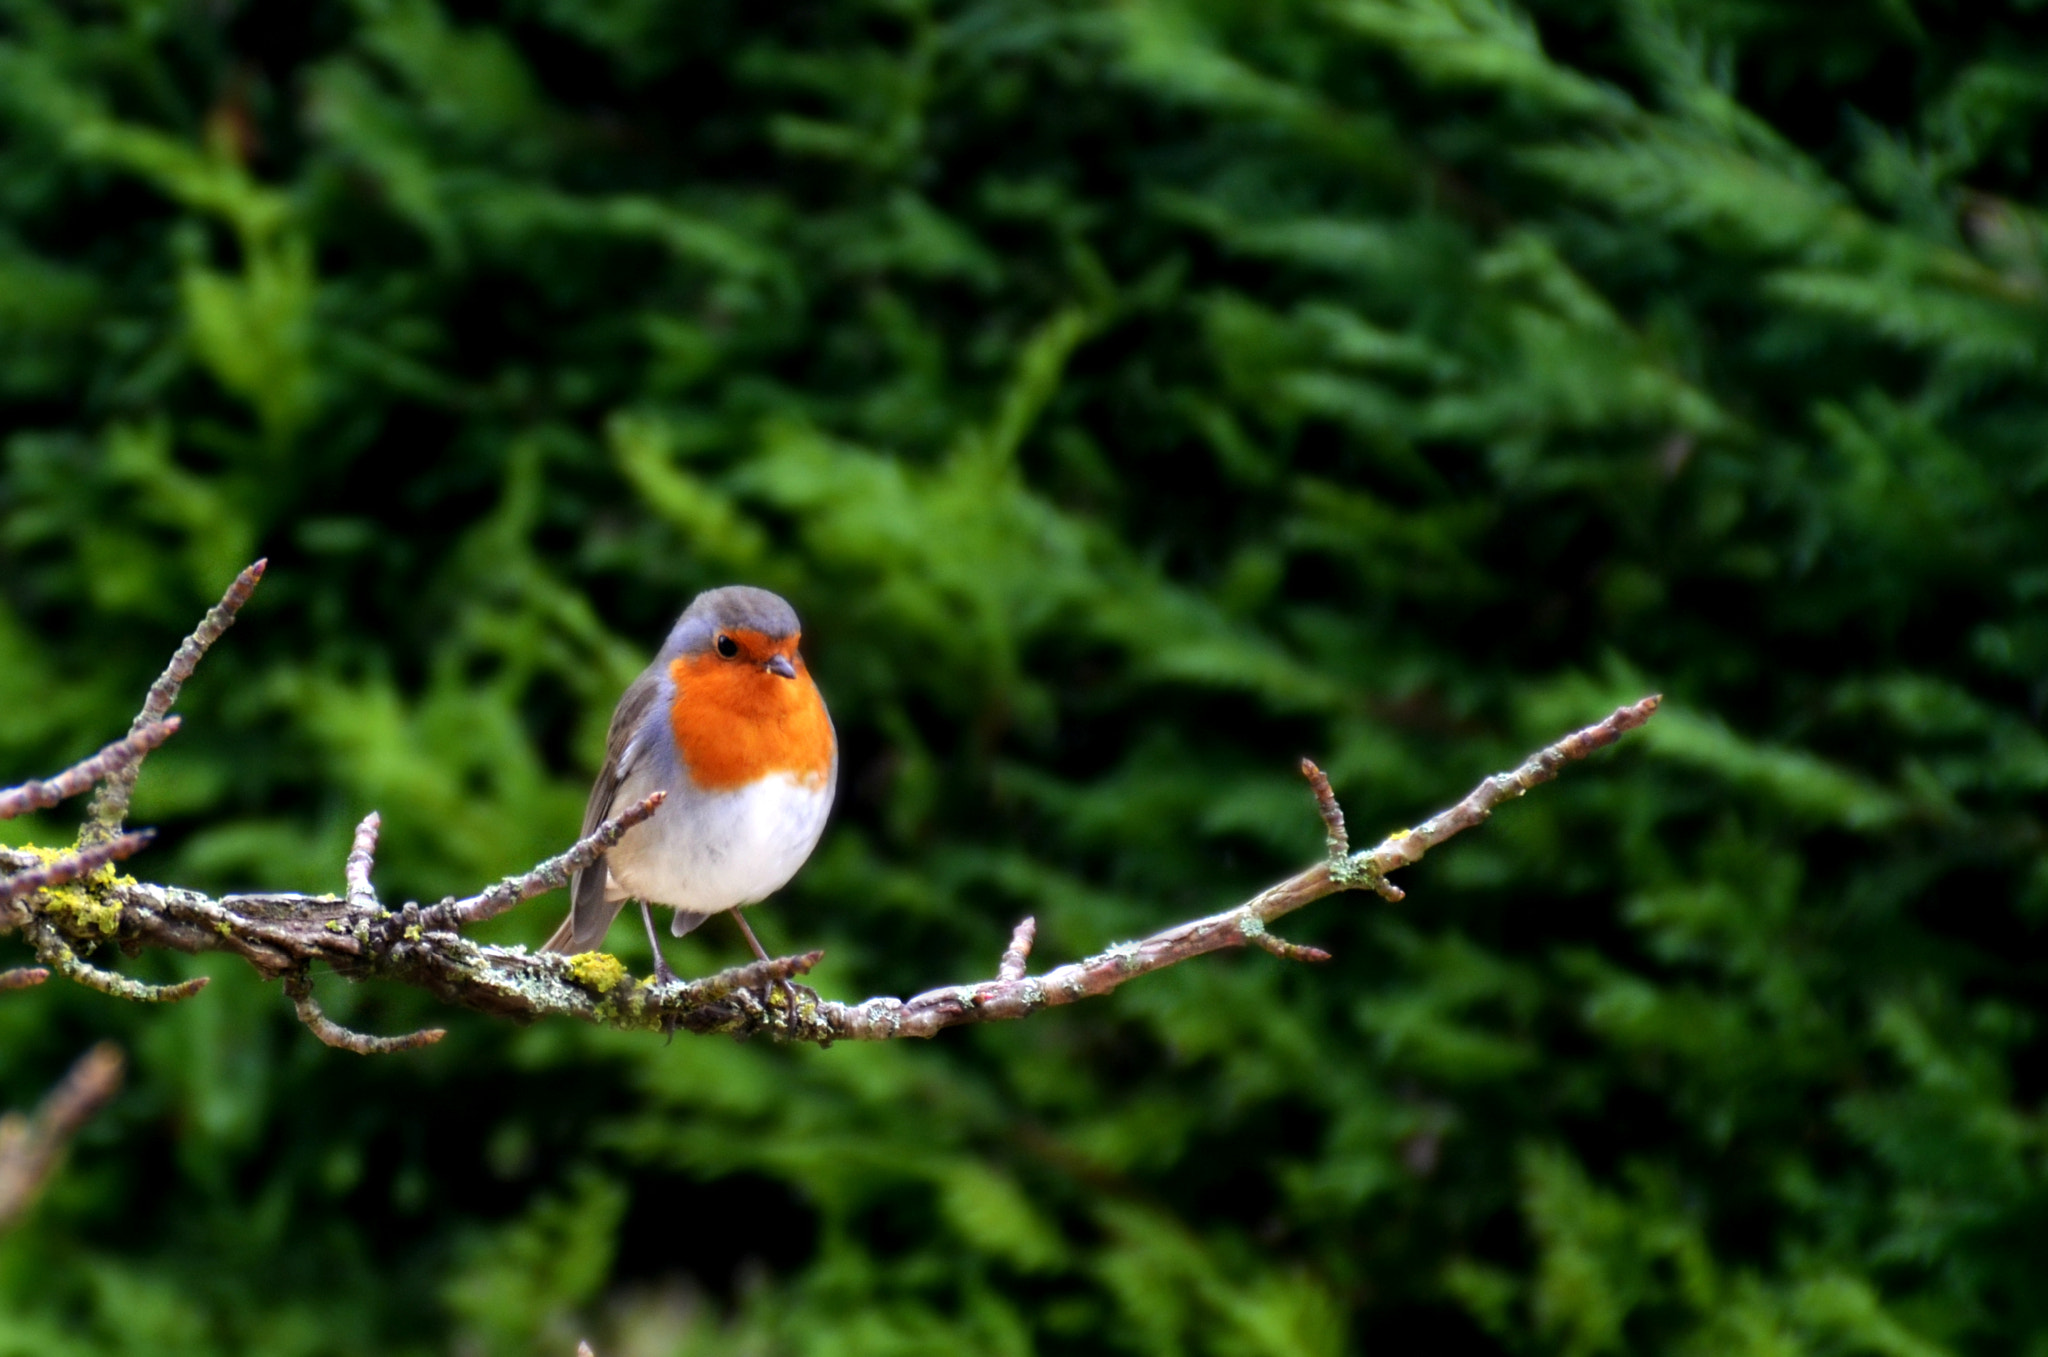 Photograph Rouge Gorge by Marjolaine Roux on 500px